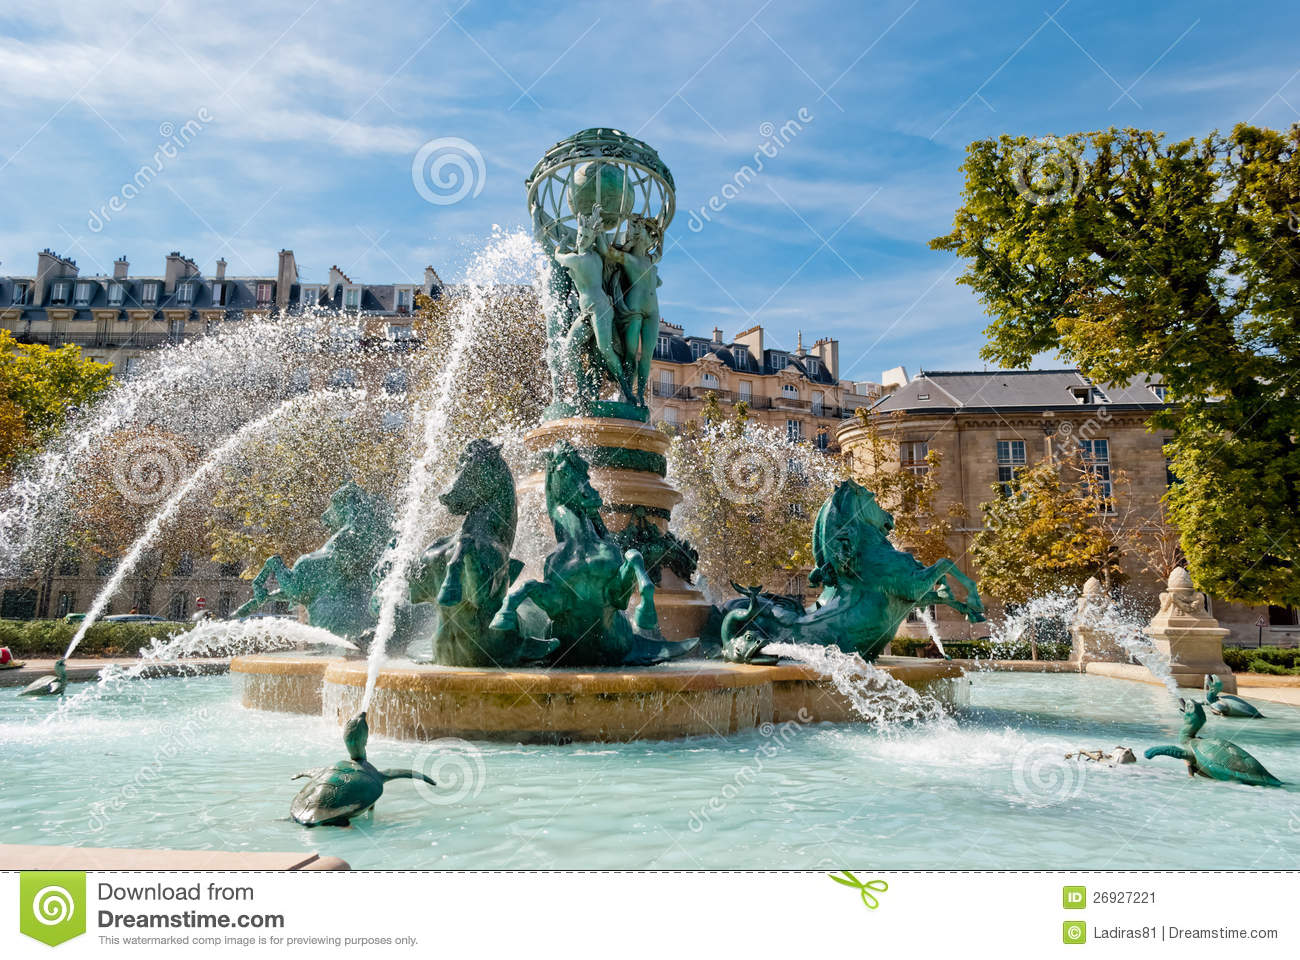 Fountain of the observatory luxembourg gardens stock for Buvette des marionnettes du jardin du luxembourg